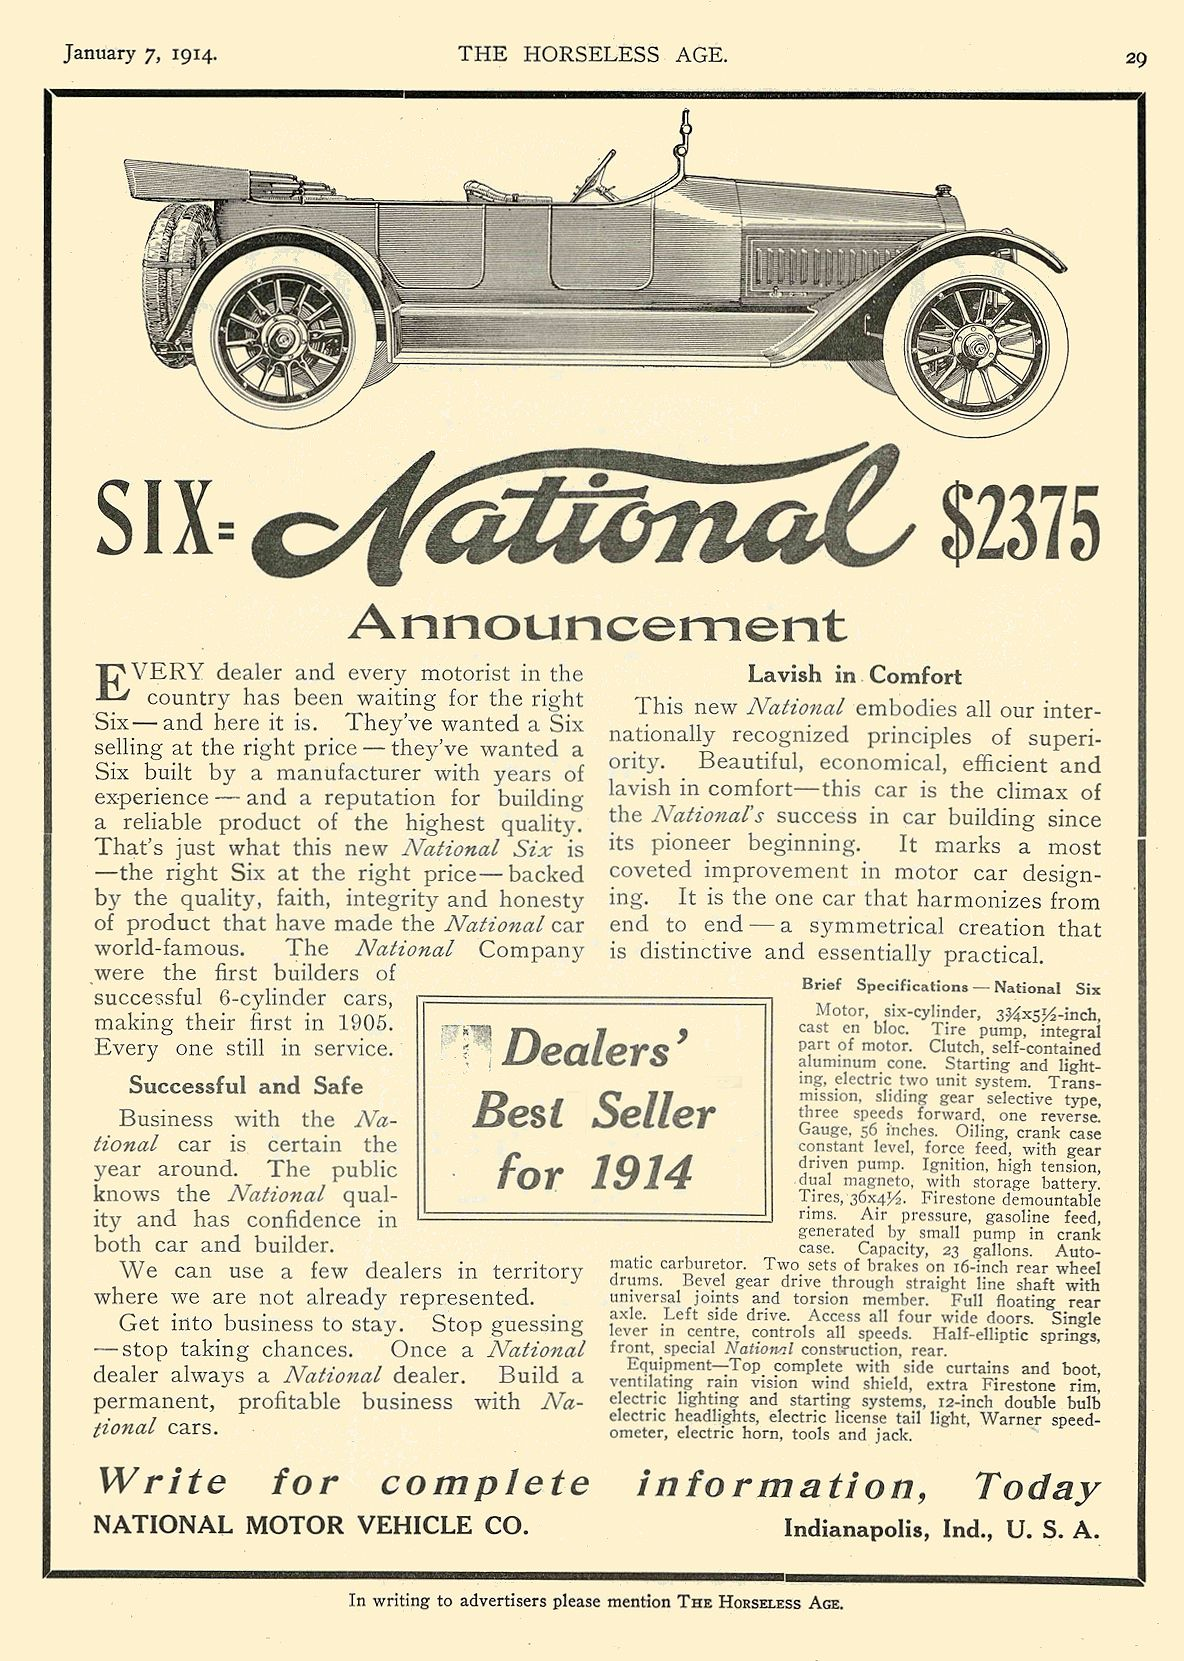 1914 1 7 NATIONAL SIX = National $2375 NATIONAL MOTOR VEHICLE CO. Indianapolis, IND THE HORSELESS AGE January 7, 1914 8.5″x12″ page 29